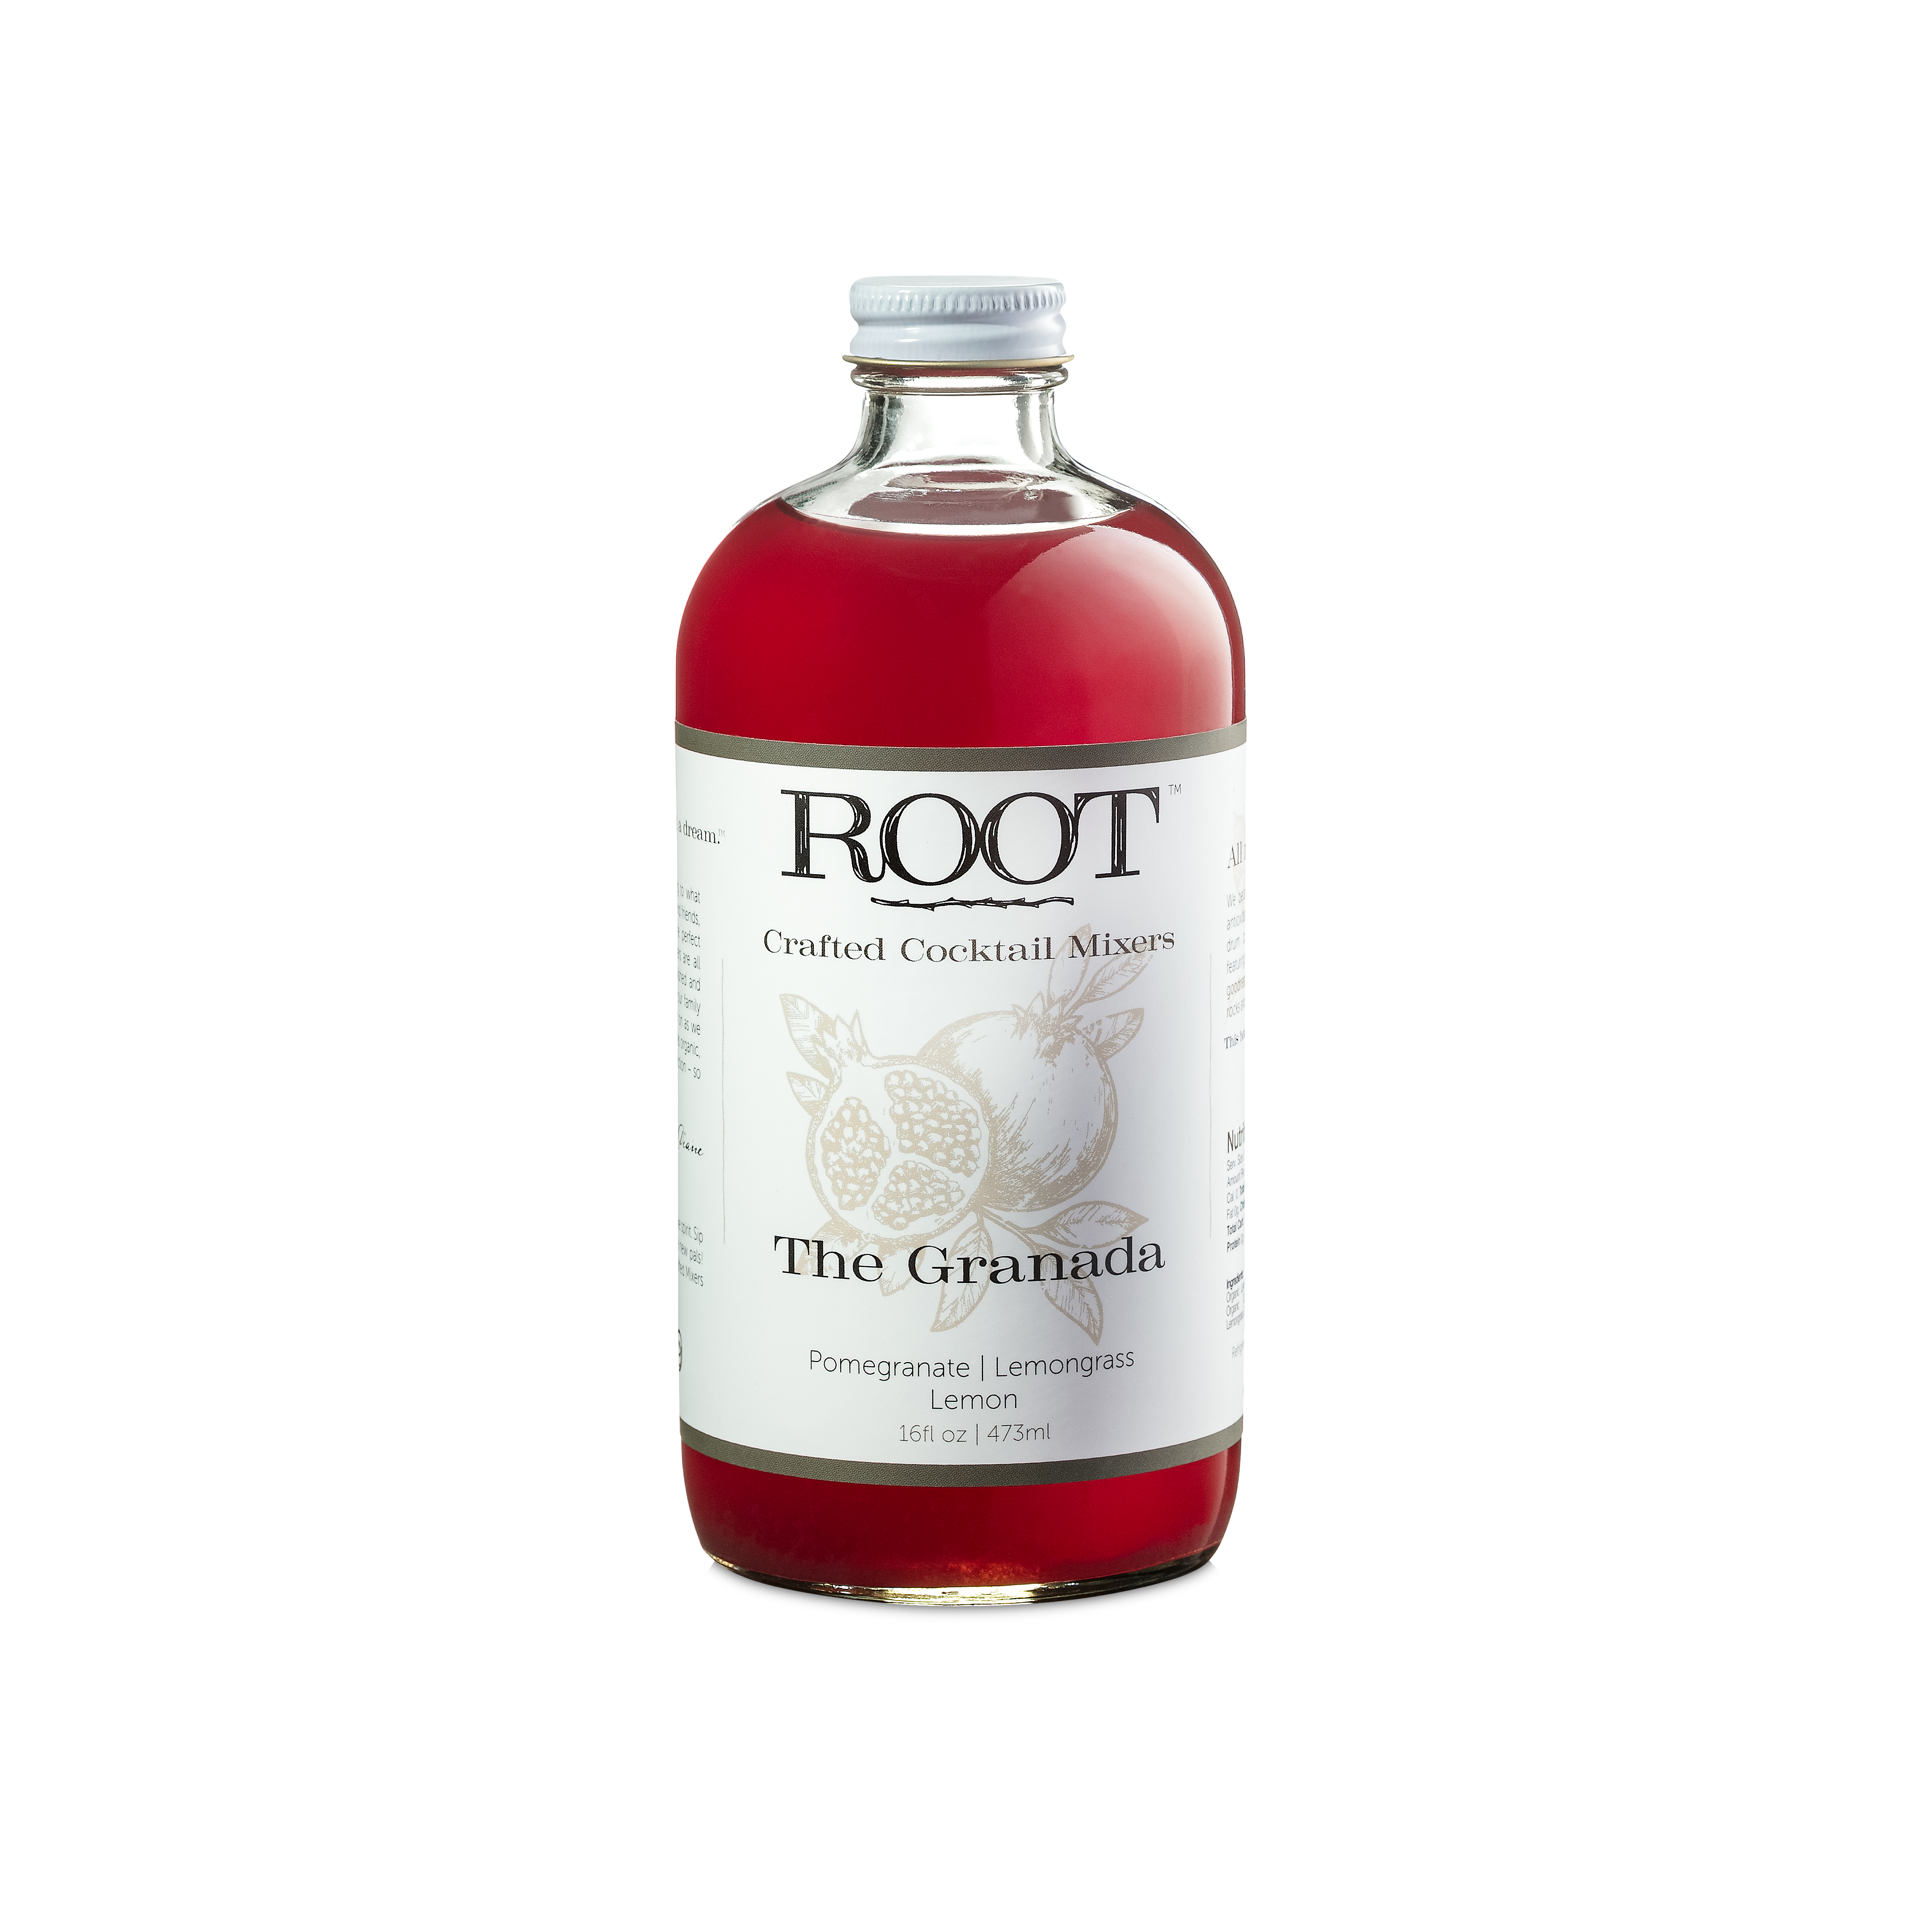 Photo of The Granada  - ROOT Crafted Cocktail Mixers (uploaded by company)